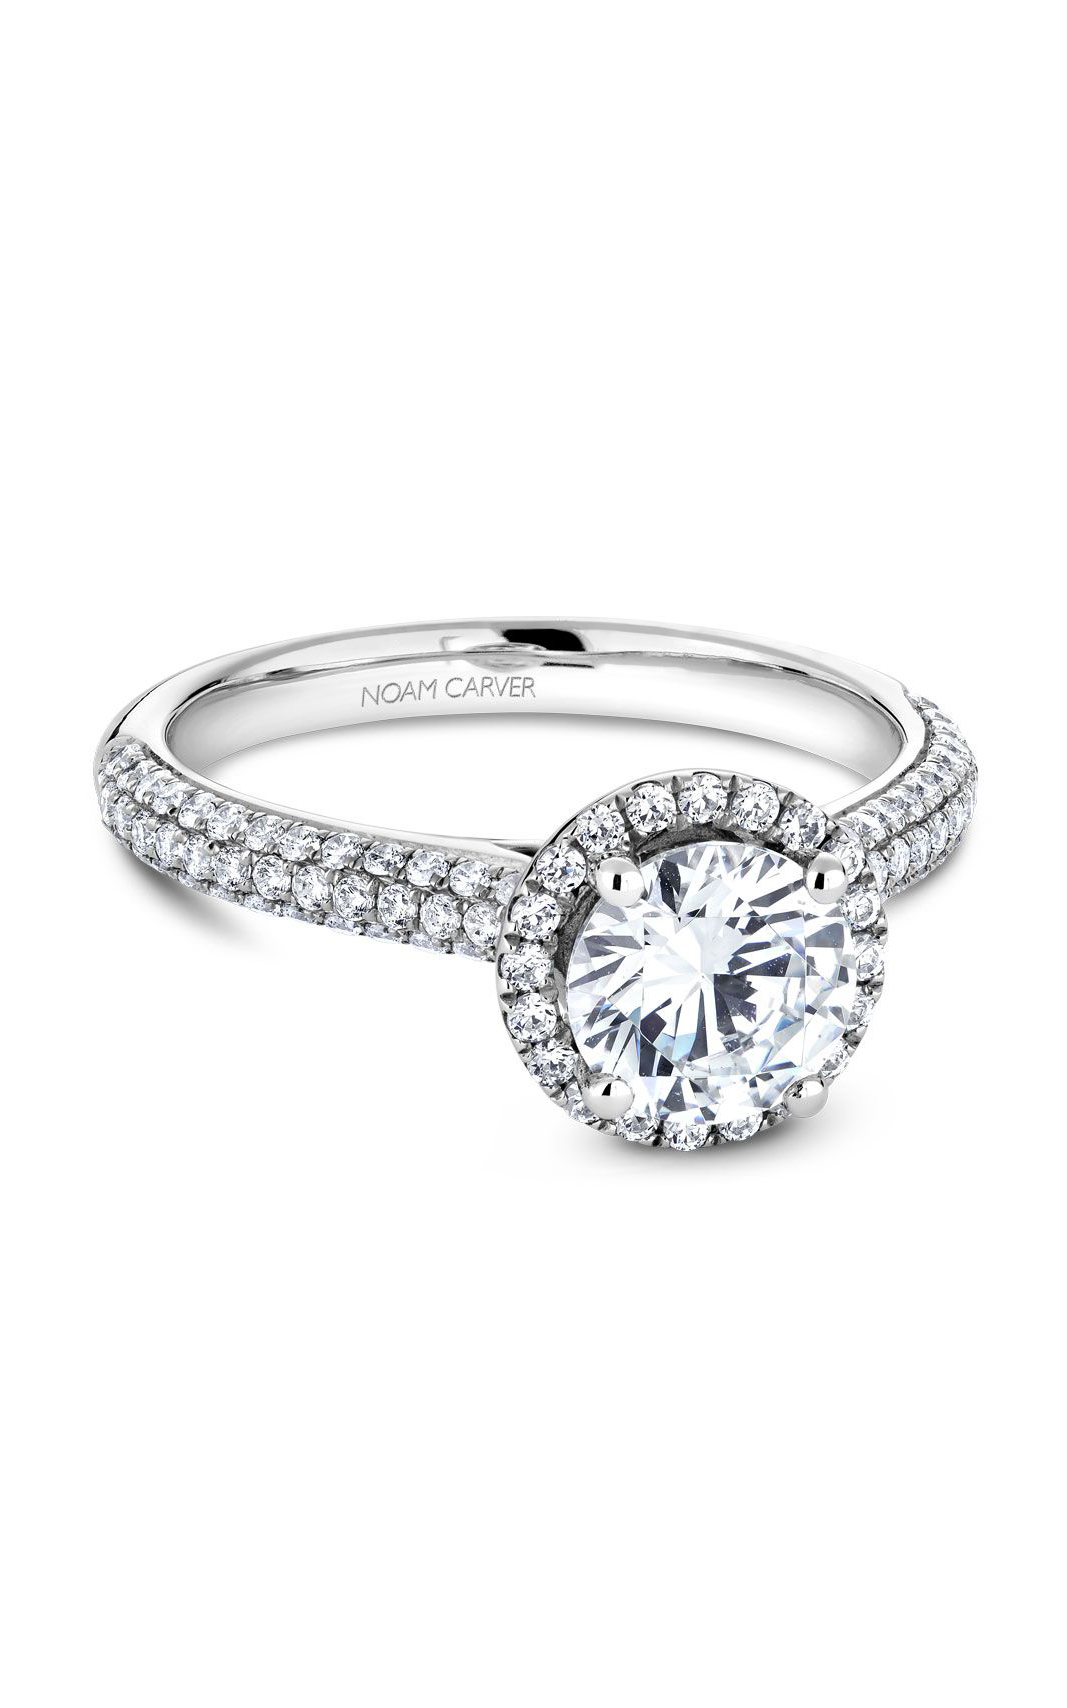 Noam Carver Halo Engagement Ring B146-05WM product image